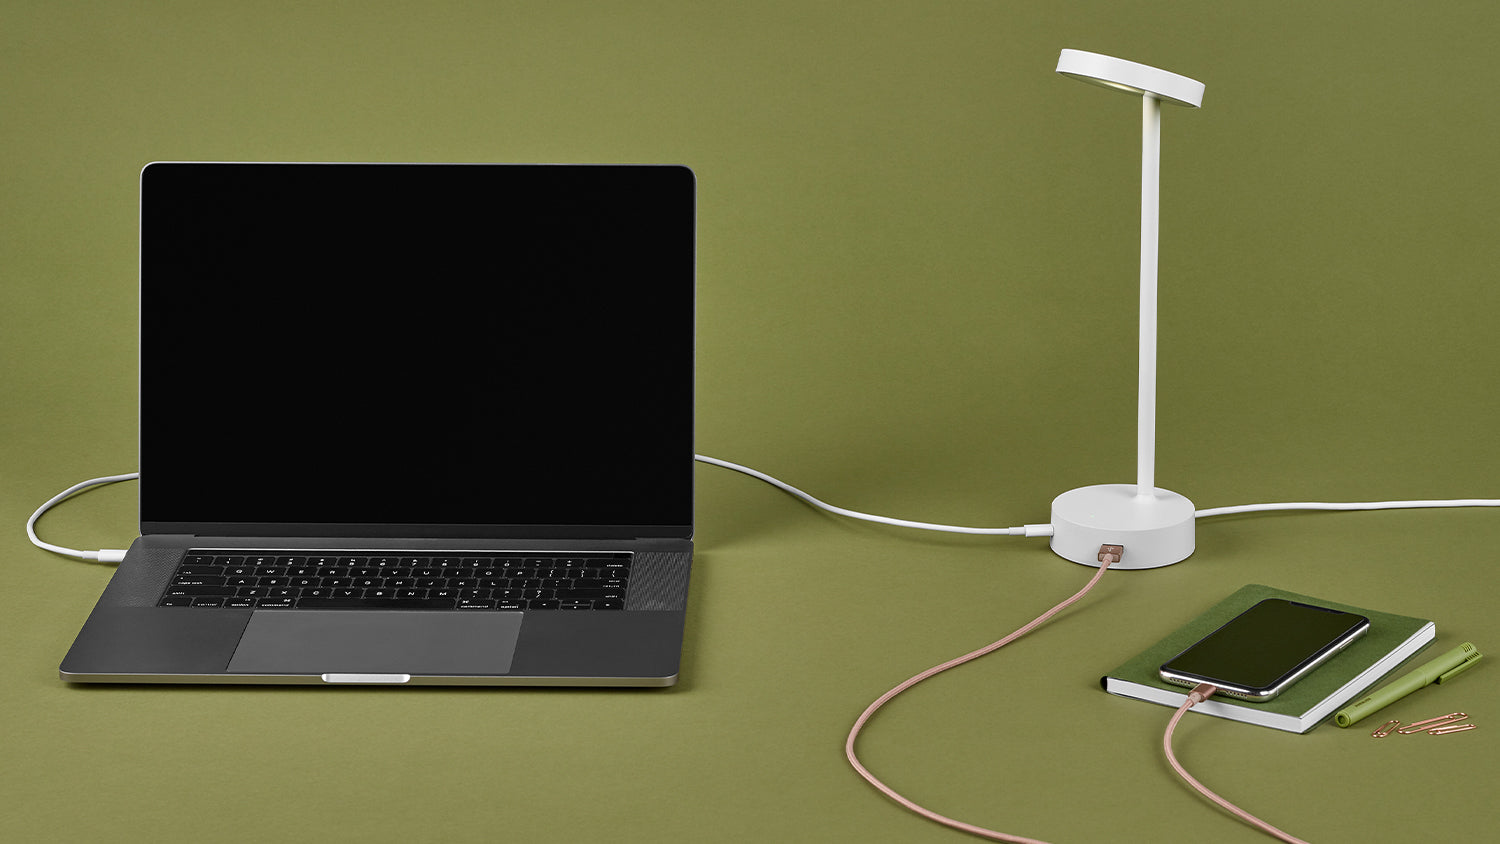 White Lolly personal light charging a laptop and mobile phone